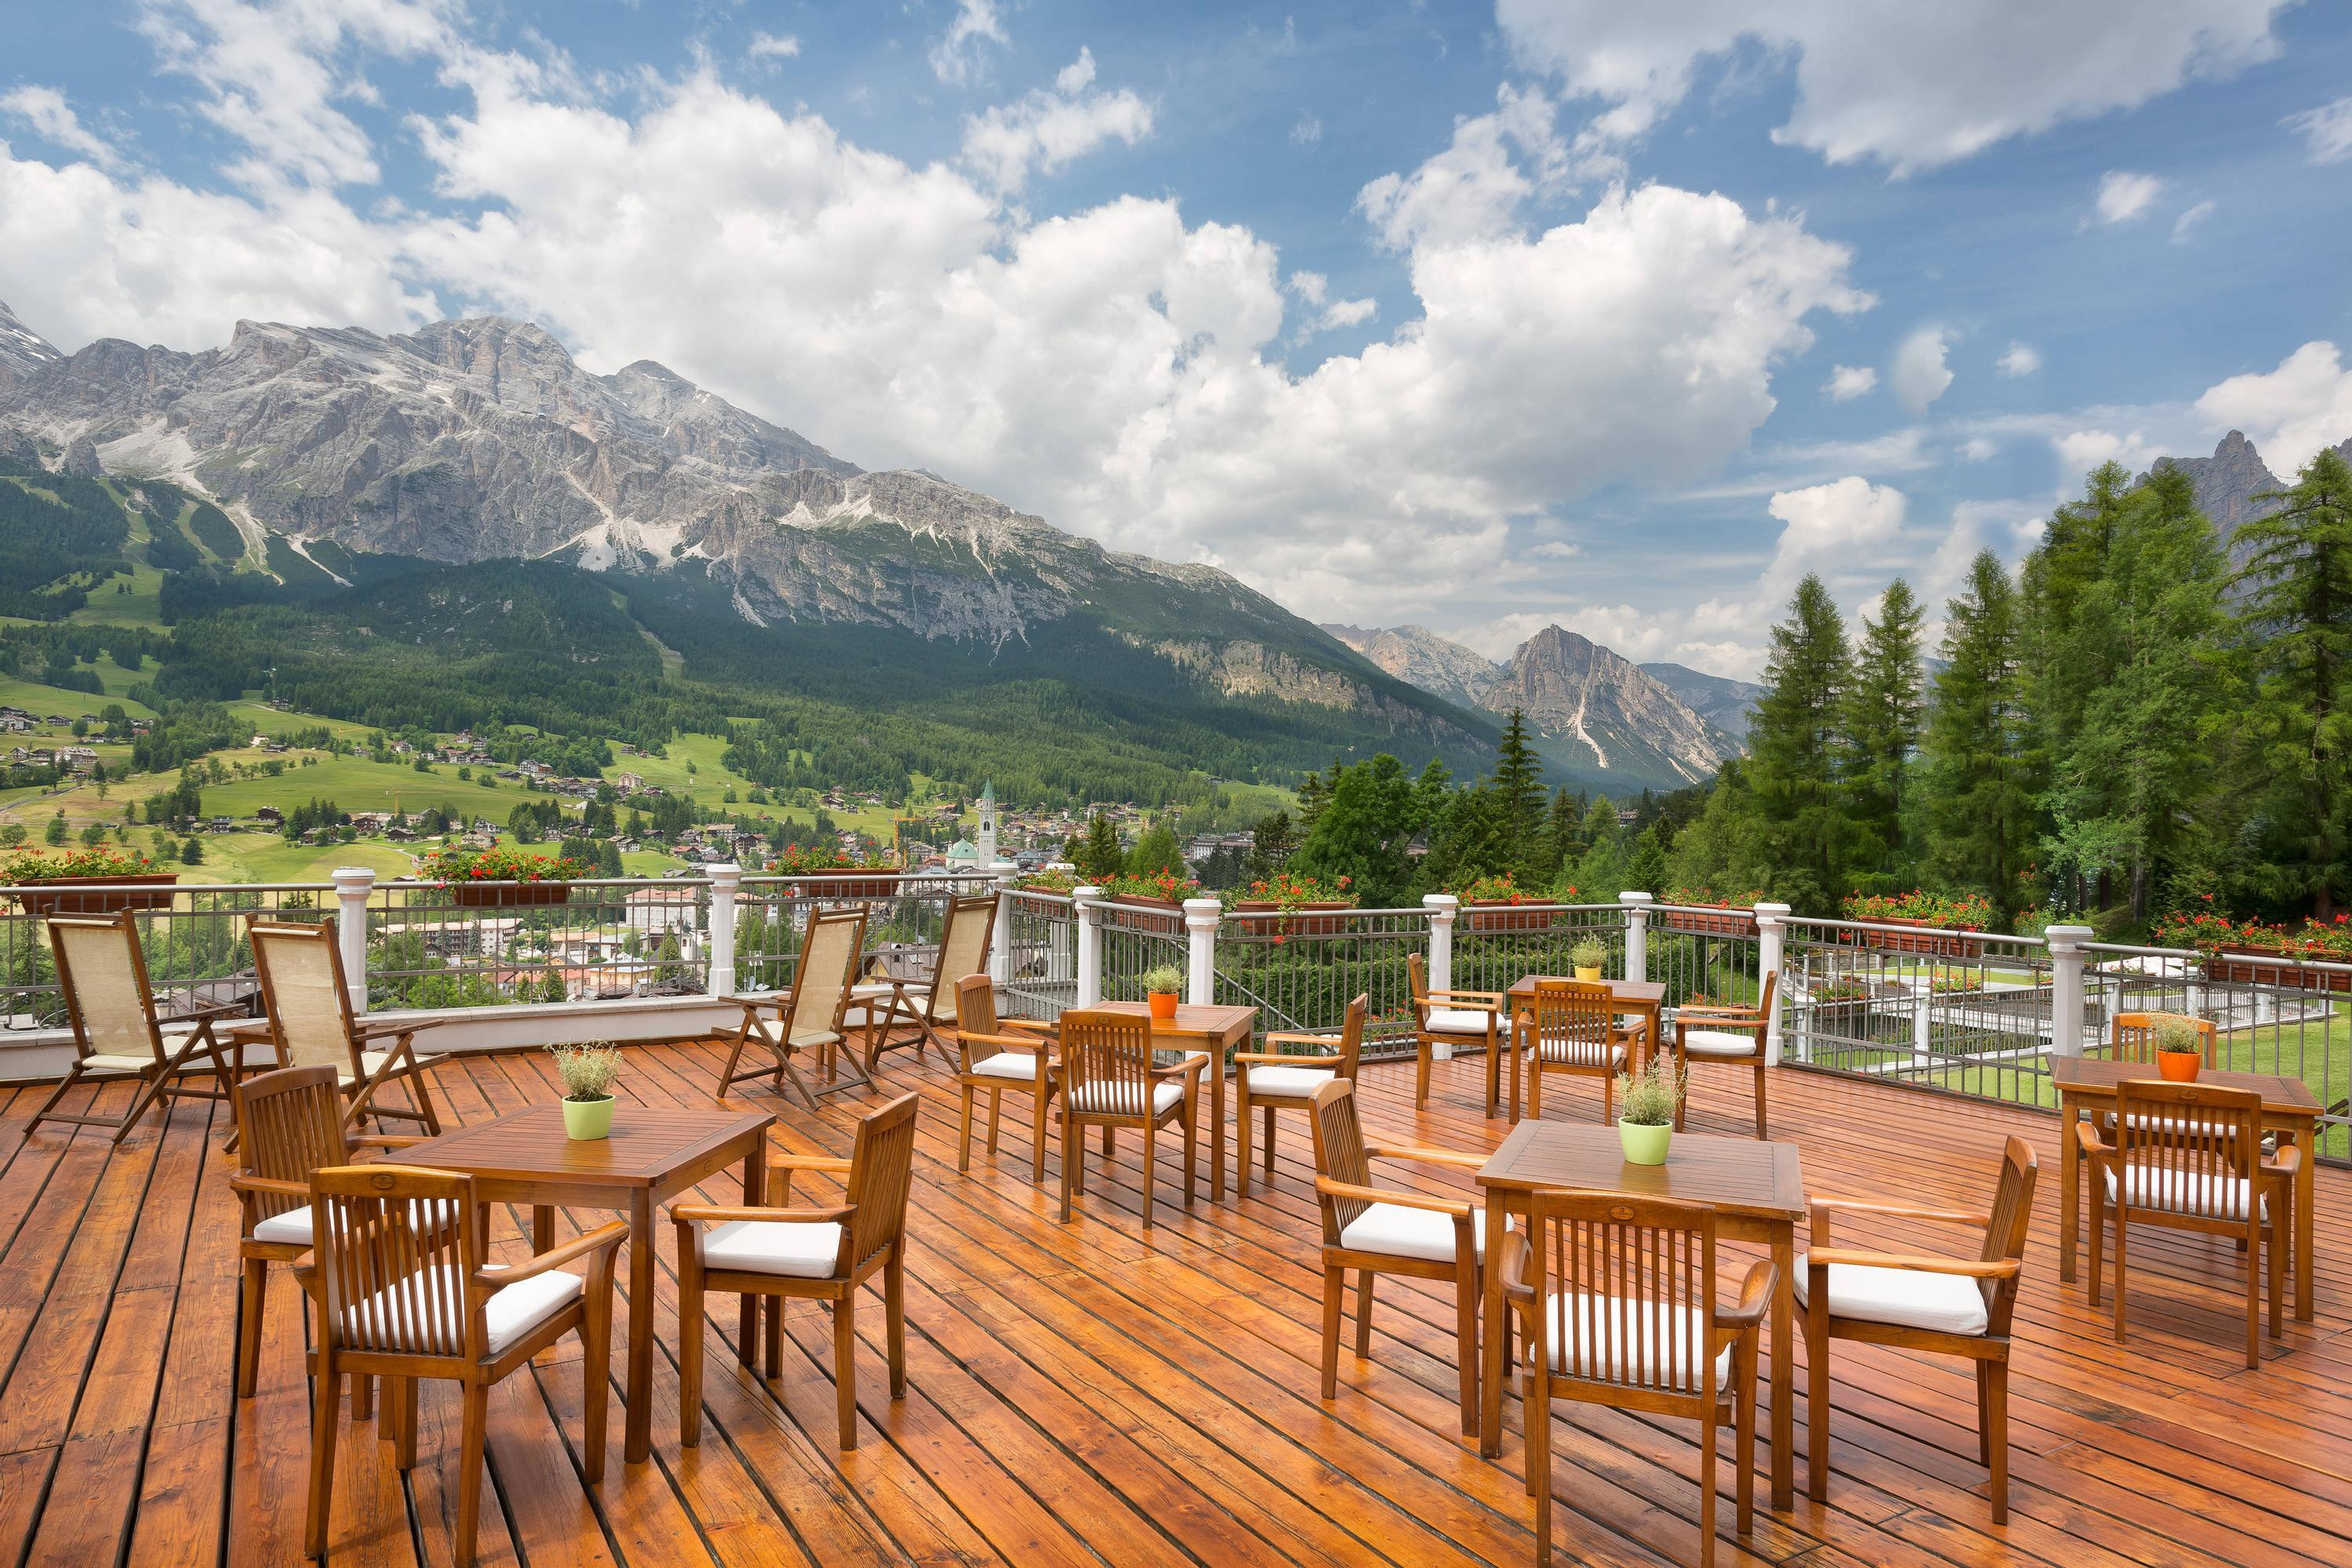 New owner quick start resources. Cristallo A Luxury Collection Resort Spa 22 791 6 2 2 7 0 Cortina D Ampezzo Hotel Deals Reviews Kayak